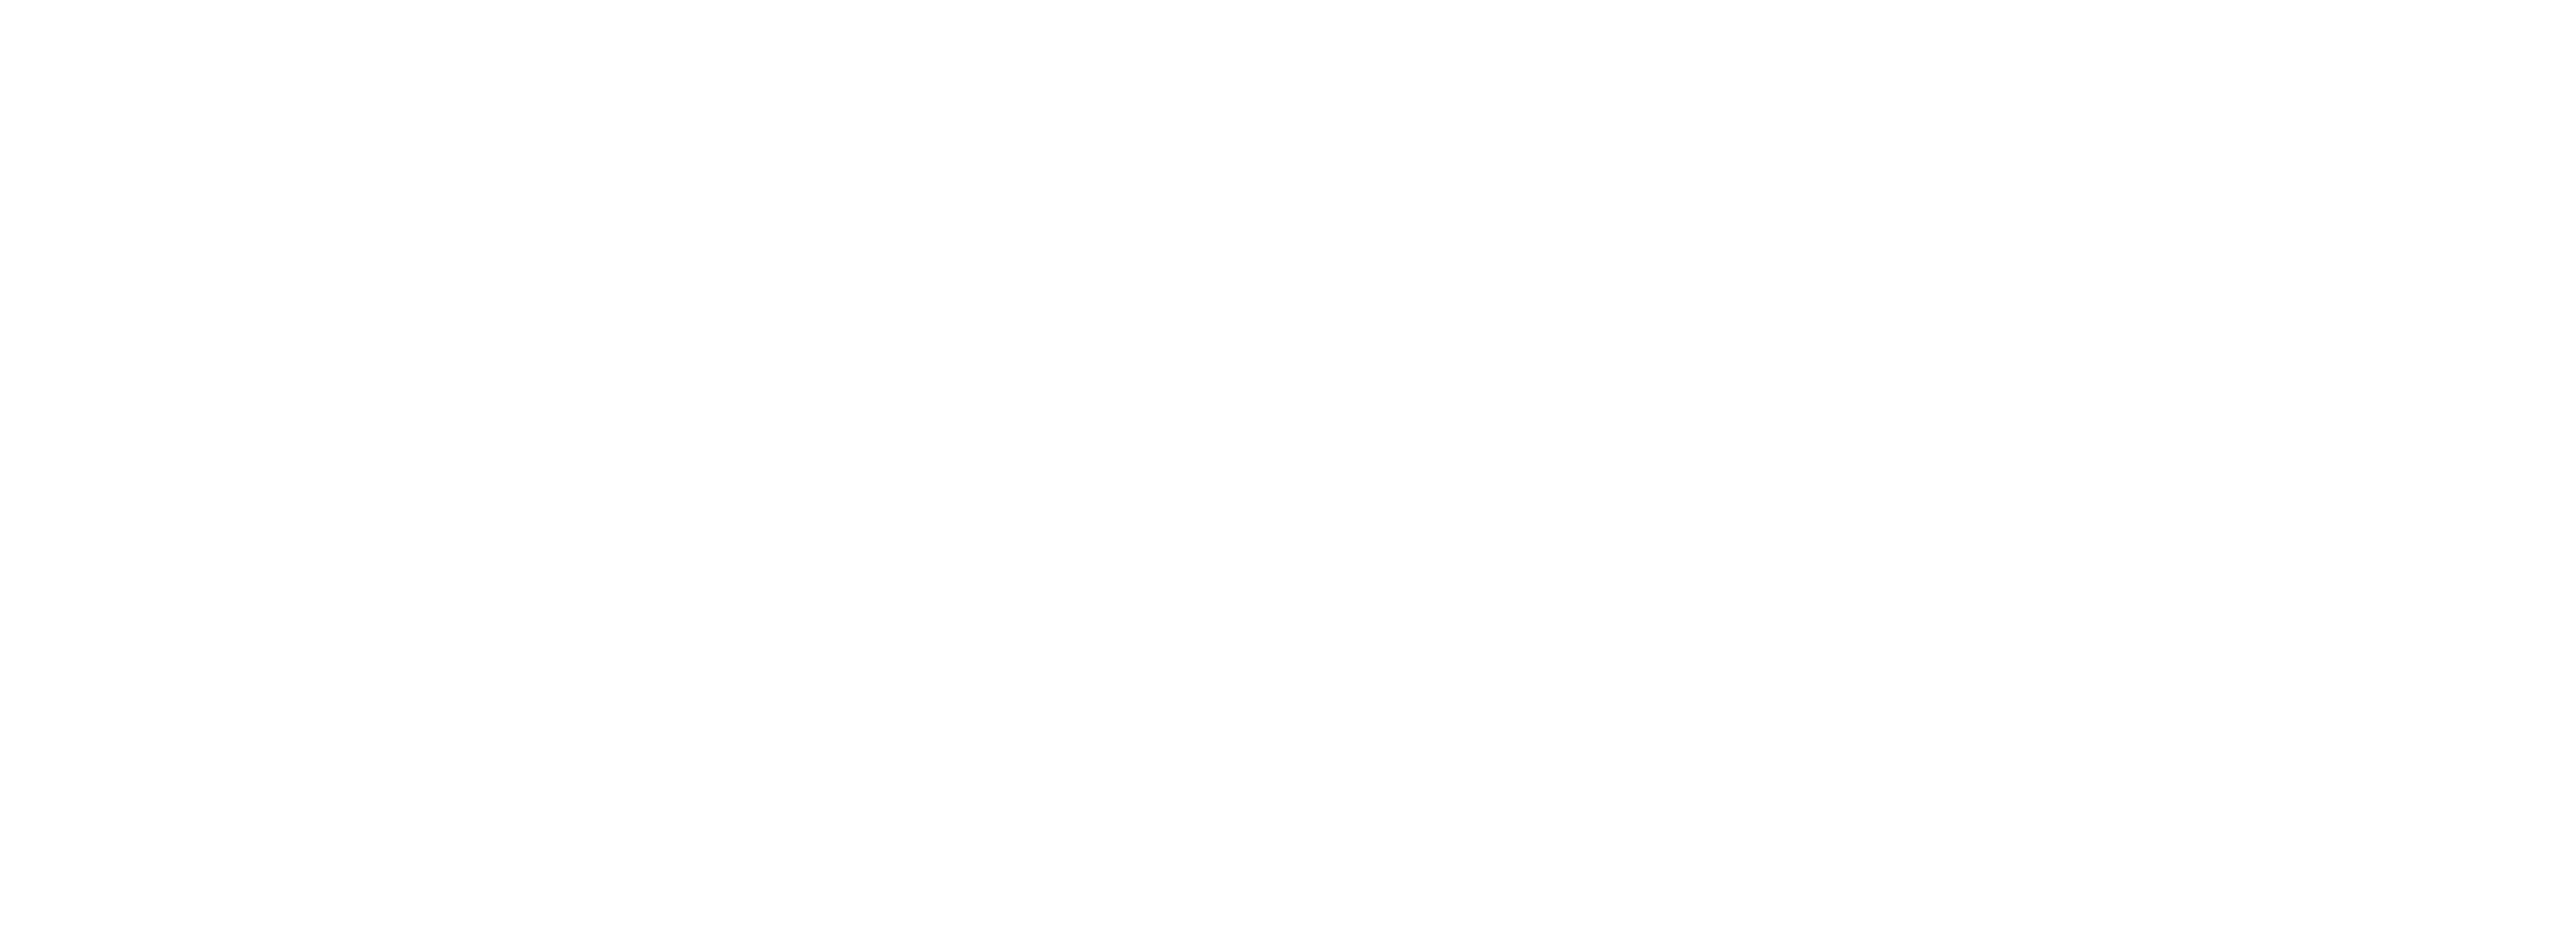 Ottawa Carleton Construction